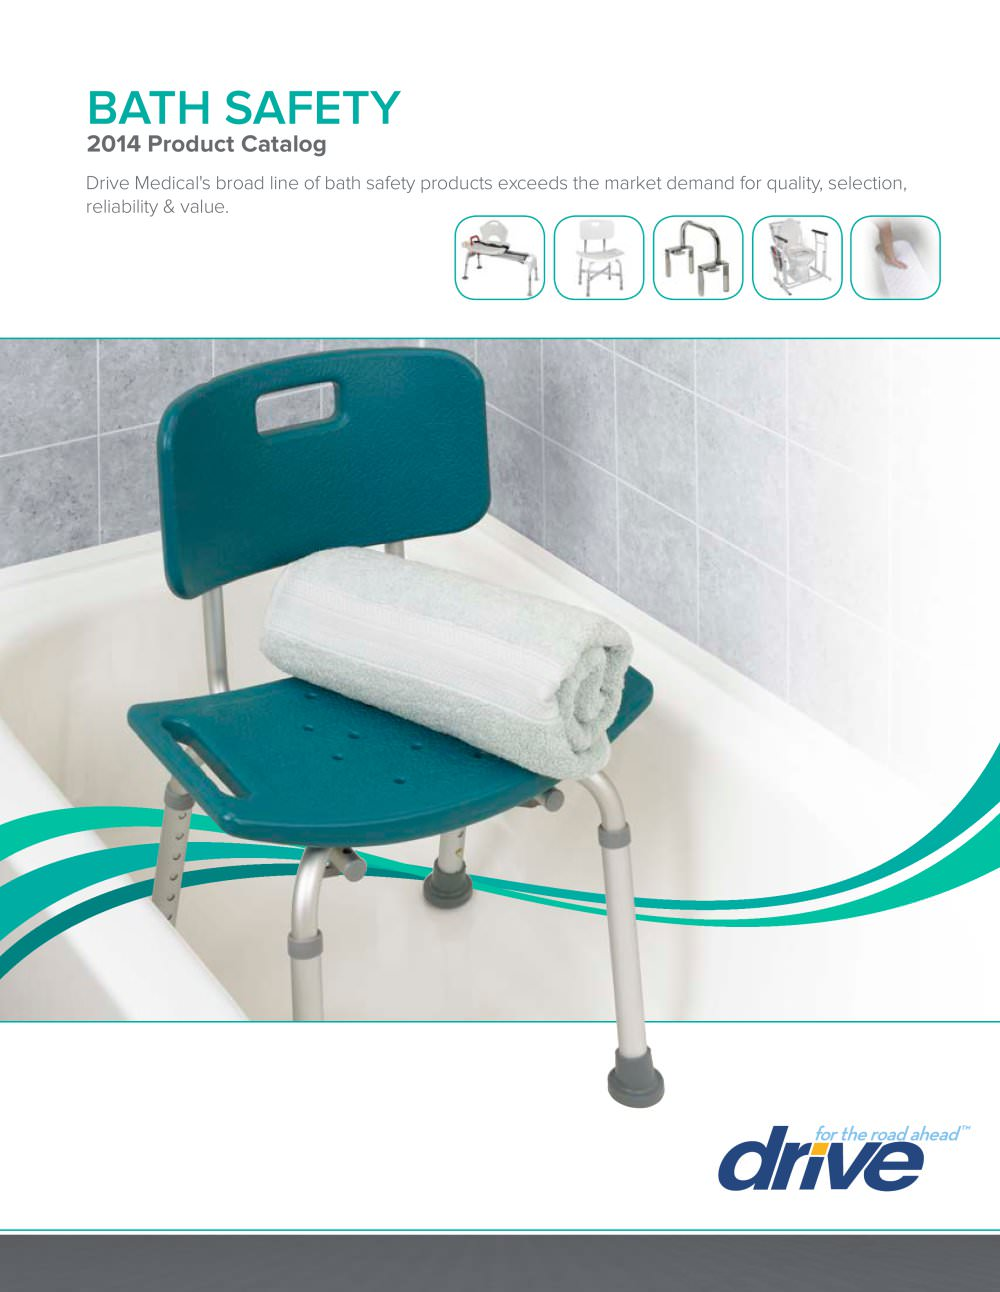 Bath-Safety - Drive DeVilbiss USA - PDF Catalogue | Technical ...